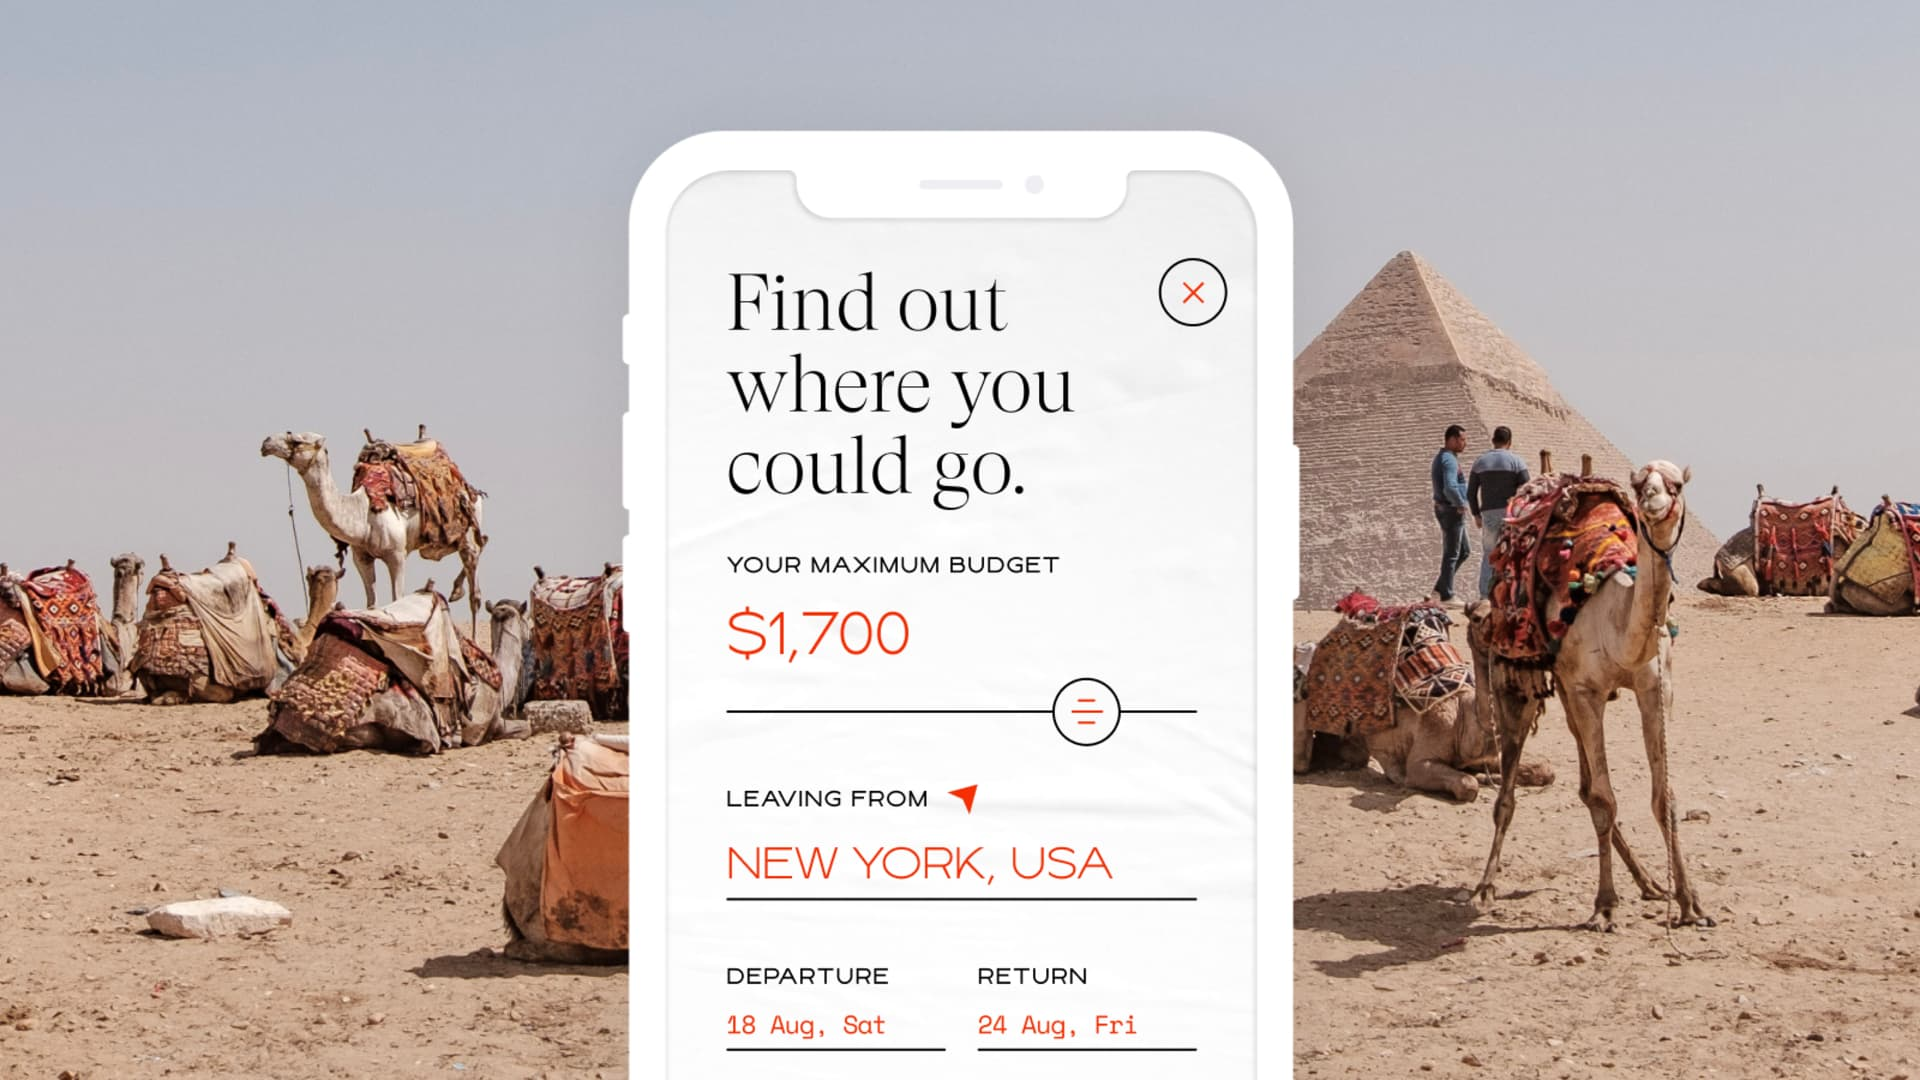 New travel app Elude matches users and their budgets with affordable trips.